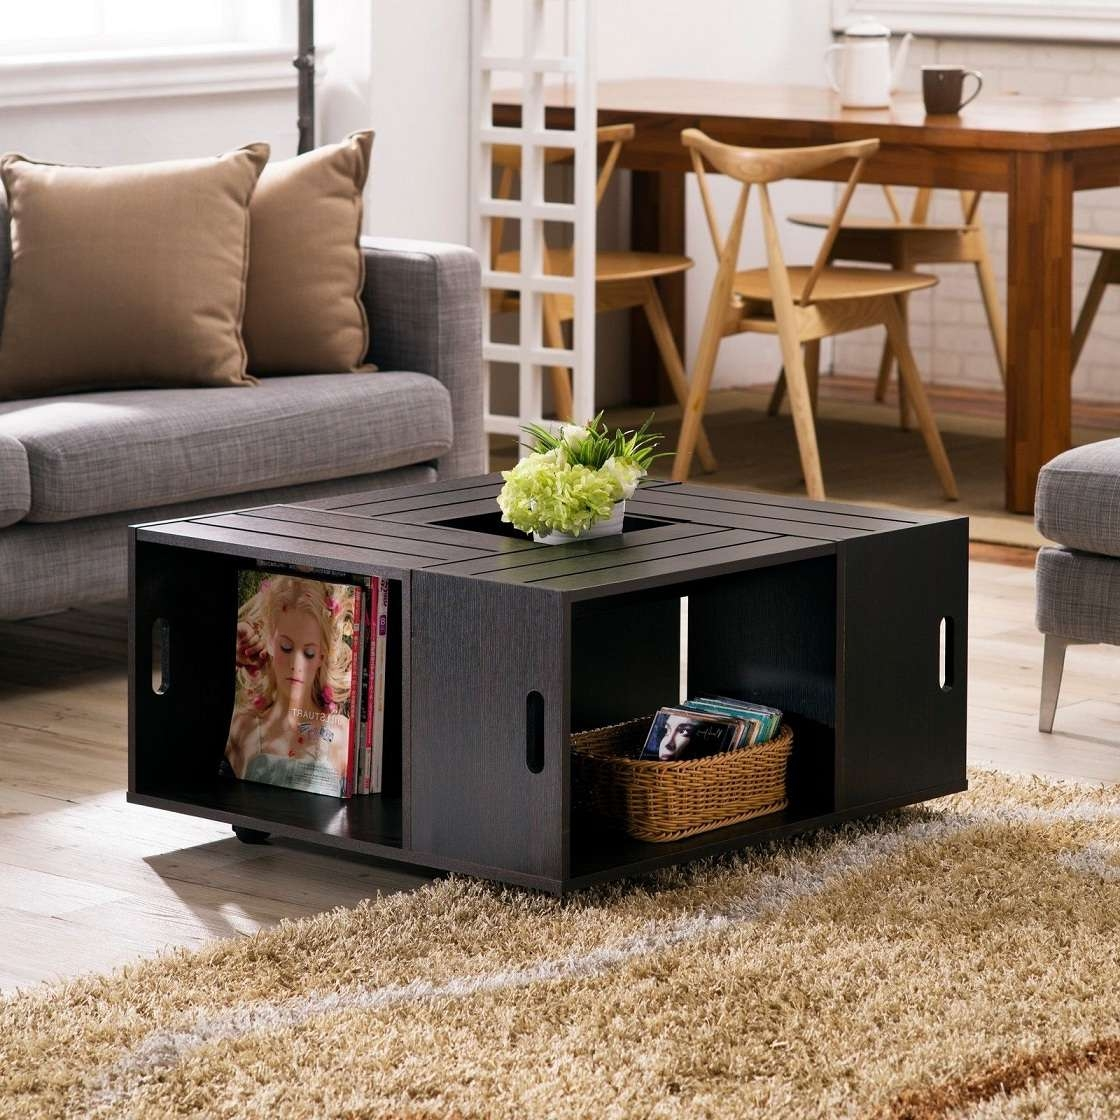 Small Square Coffee Table With Storage 20 Photos Small Coffee Tables With Shelf